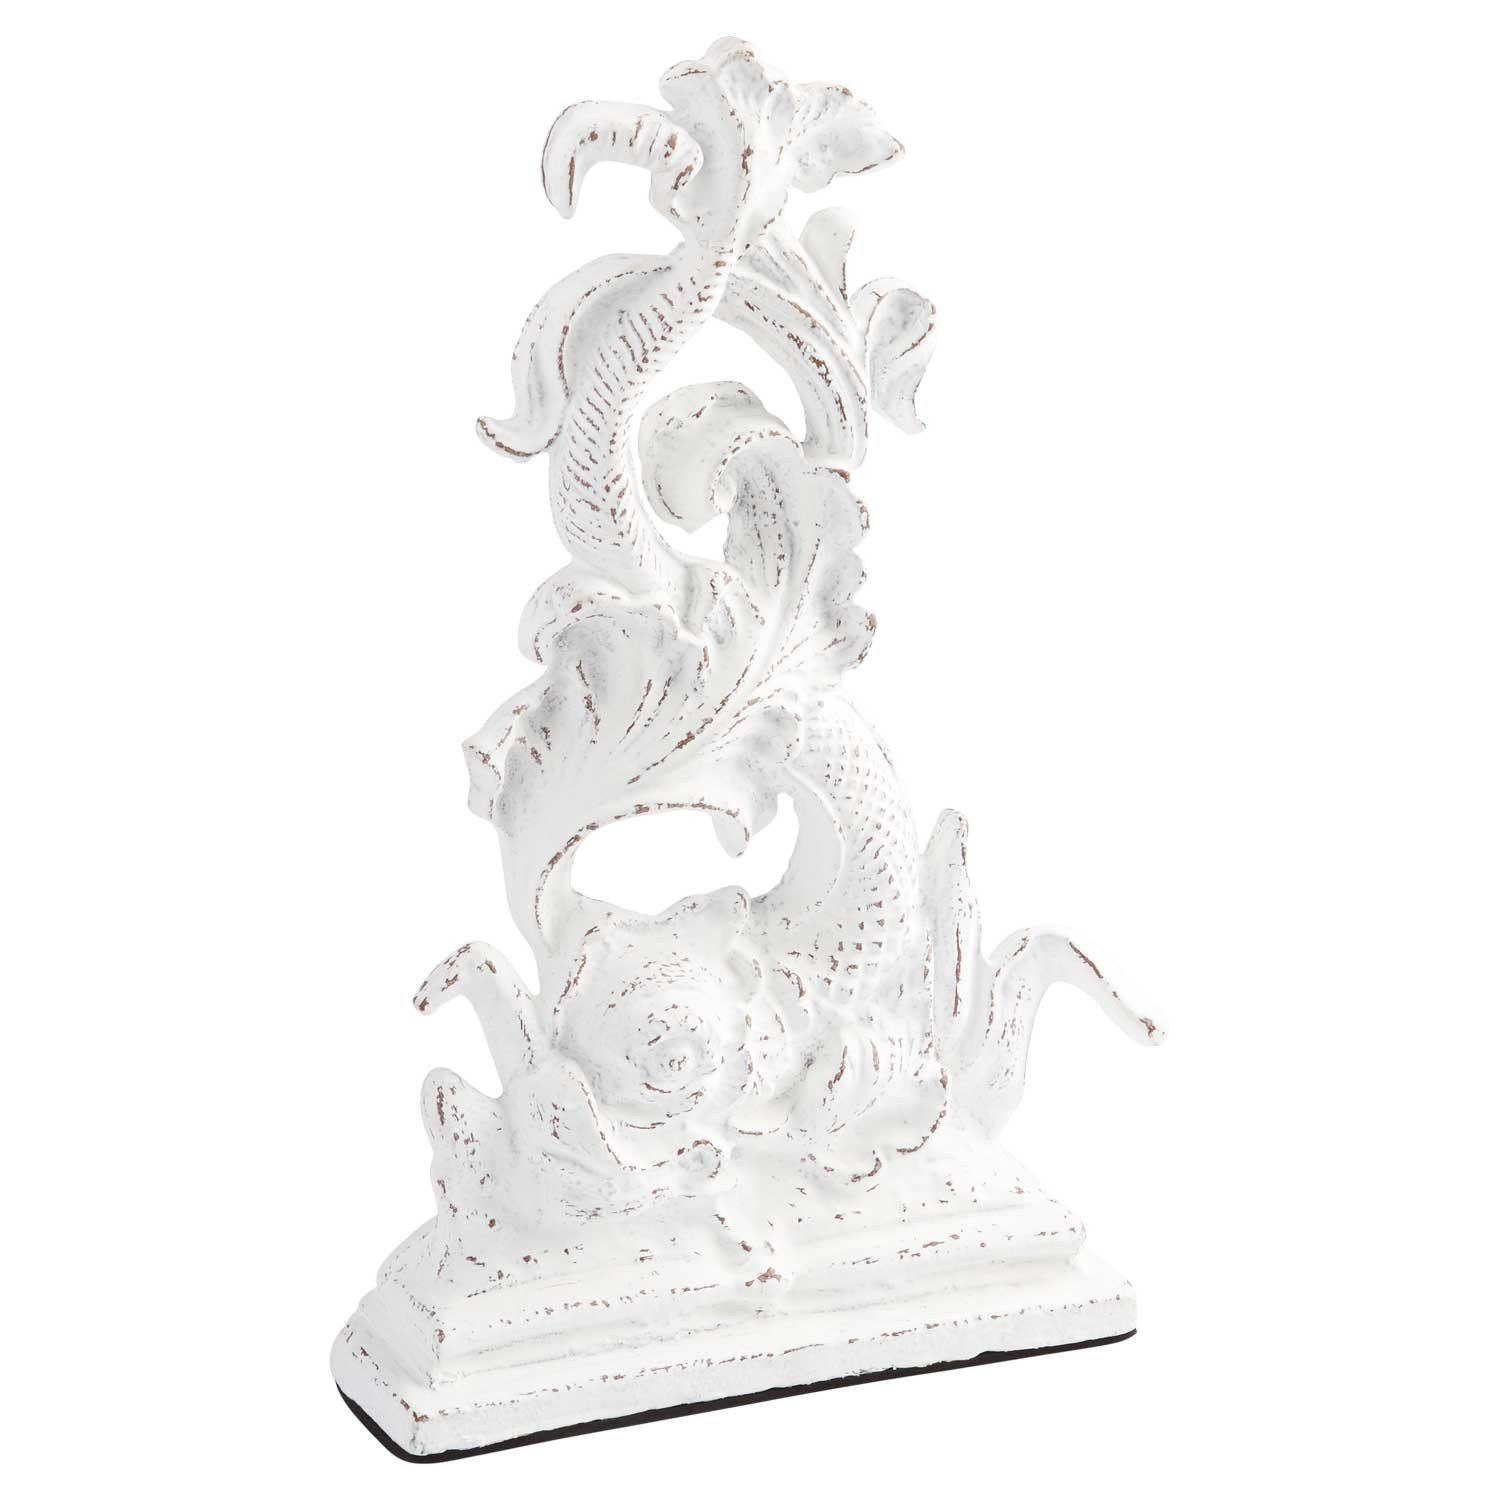 Naiture Cast Iron Dragon Doorstop in Distressed White Finish by SH